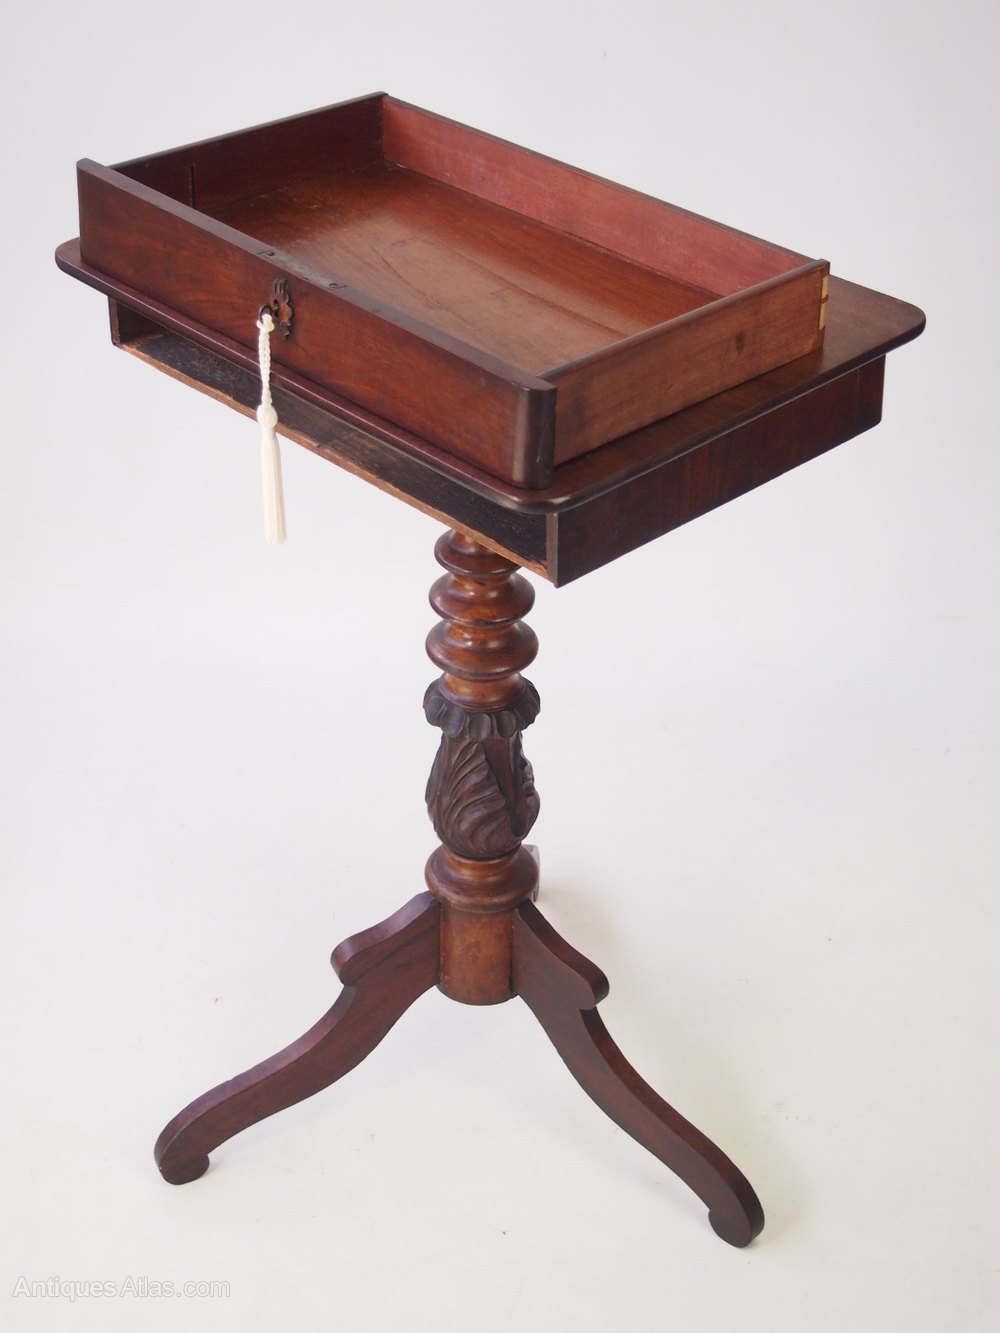 antique mahogany tripod table with drawer antiques atlas. Black Bedroom Furniture Sets. Home Design Ideas